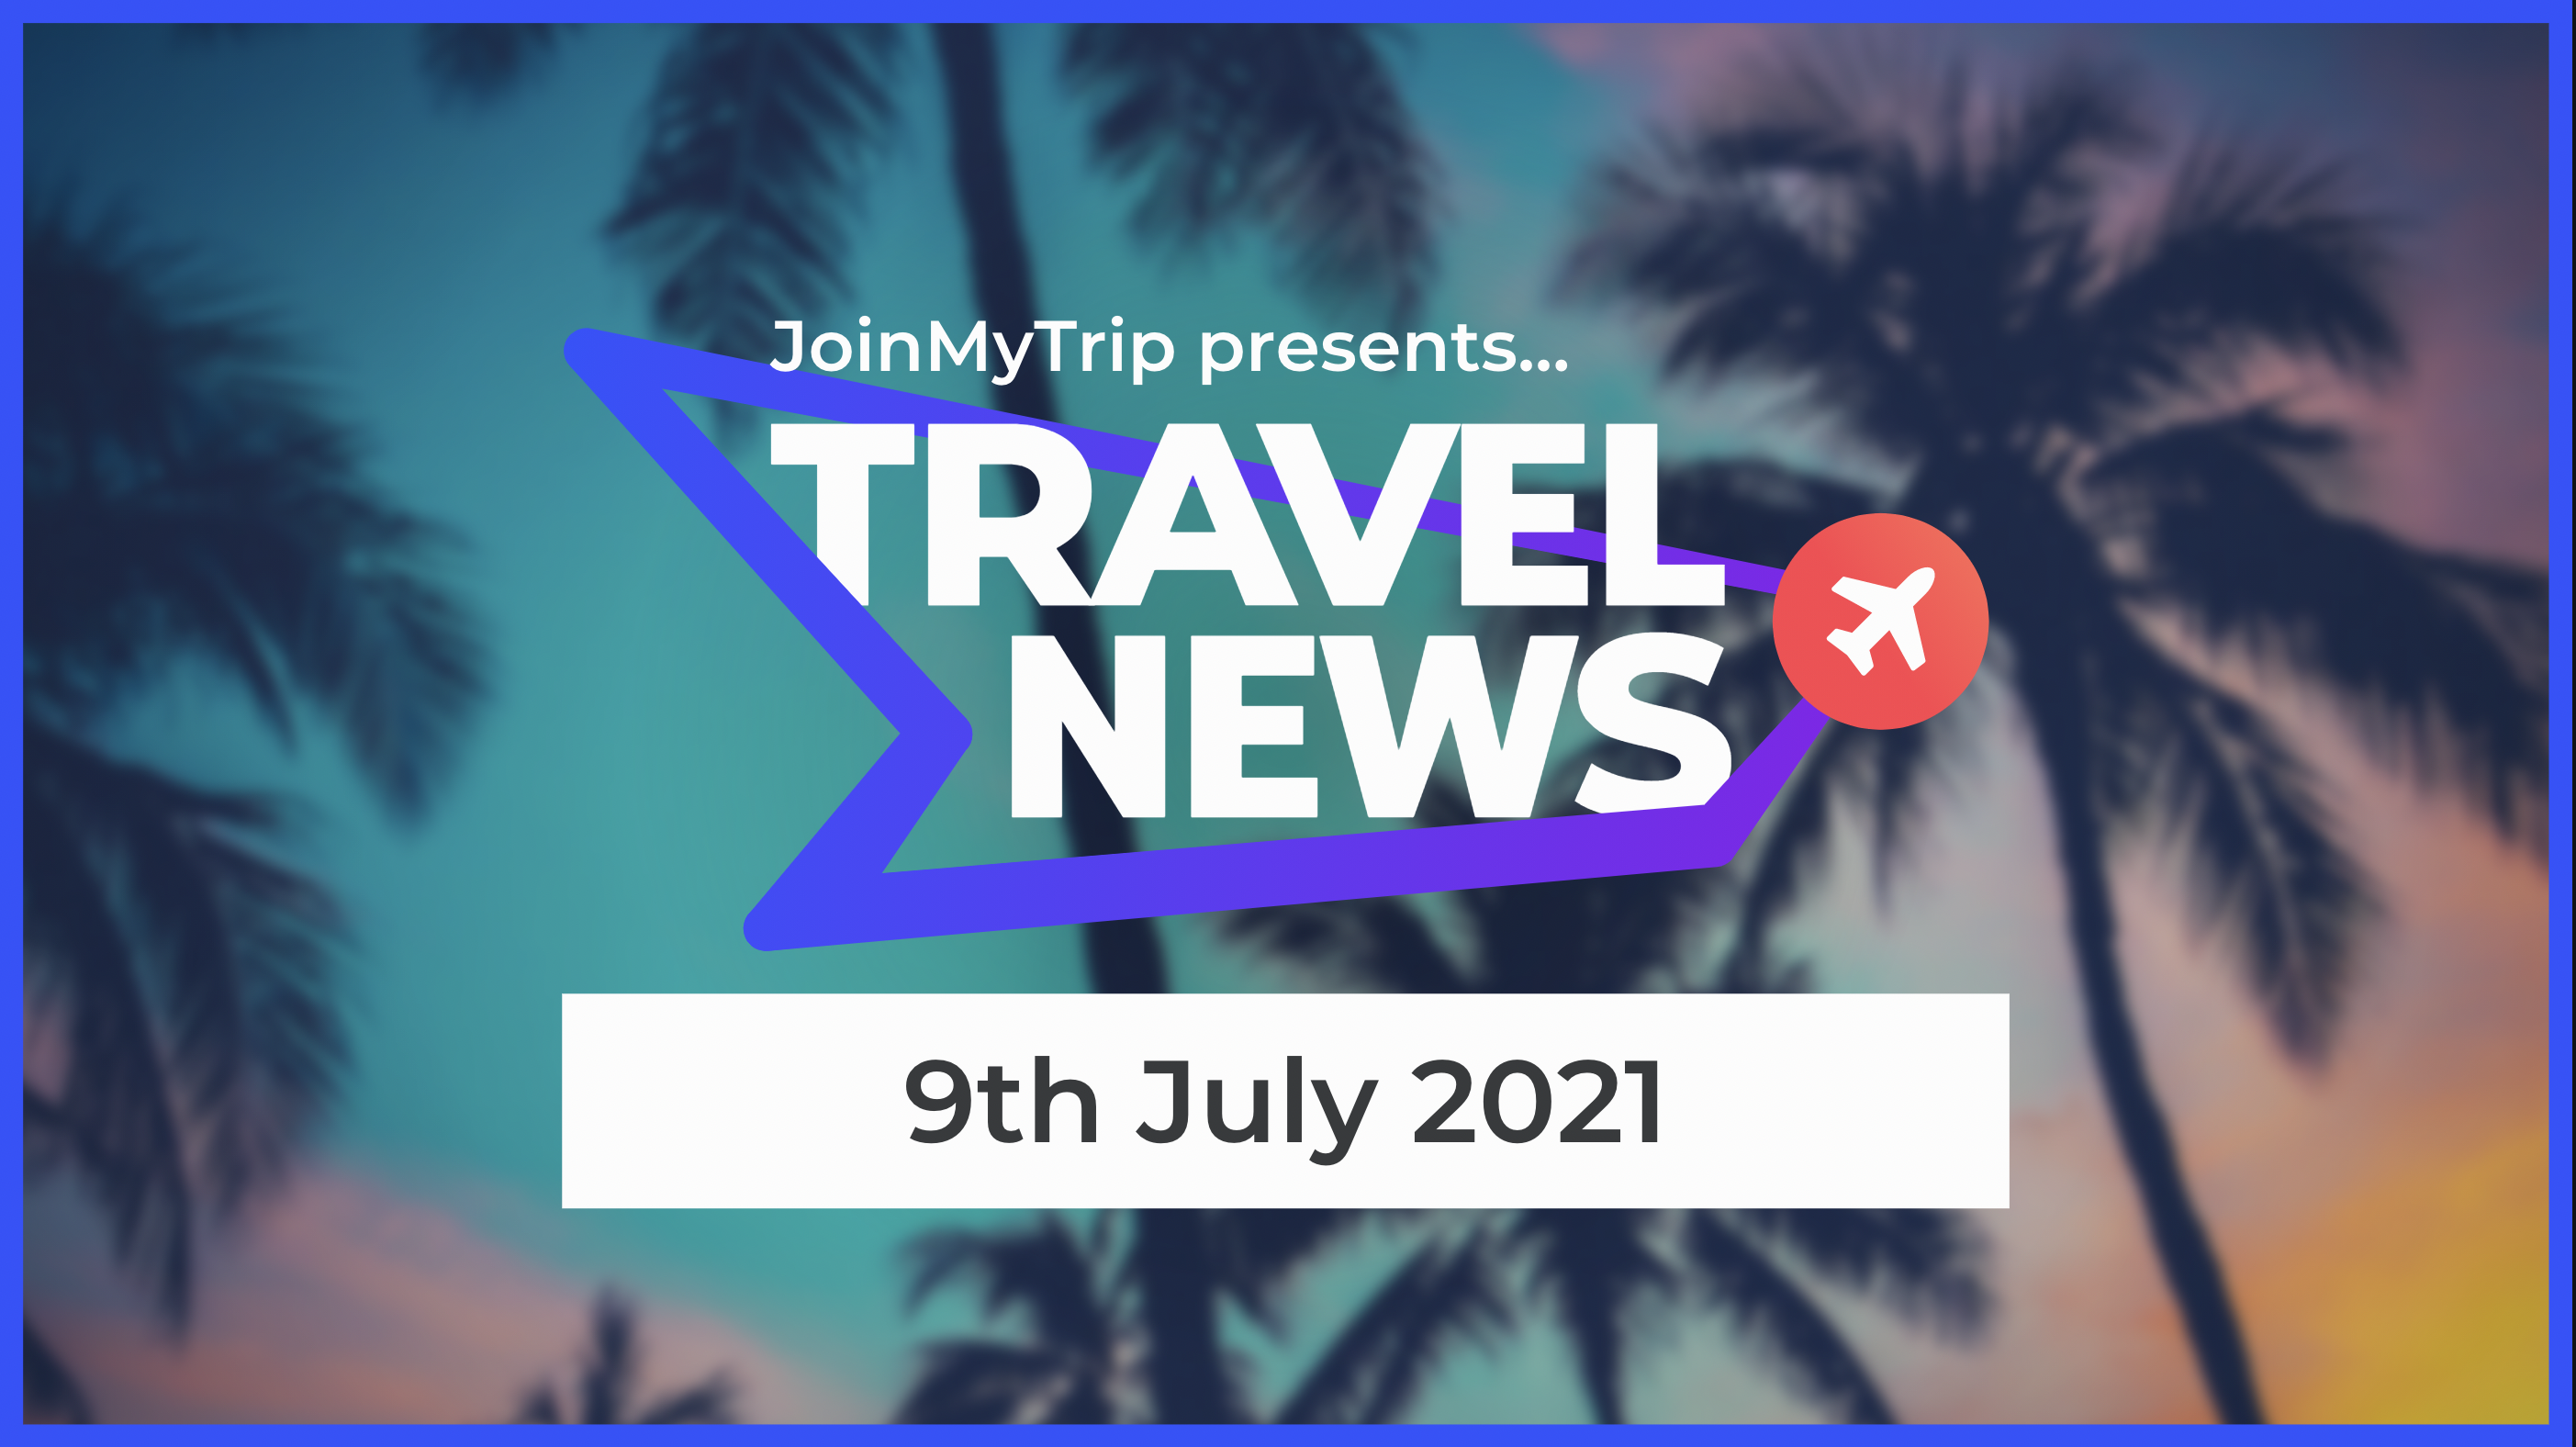 Travel News on the 9th of July 2021